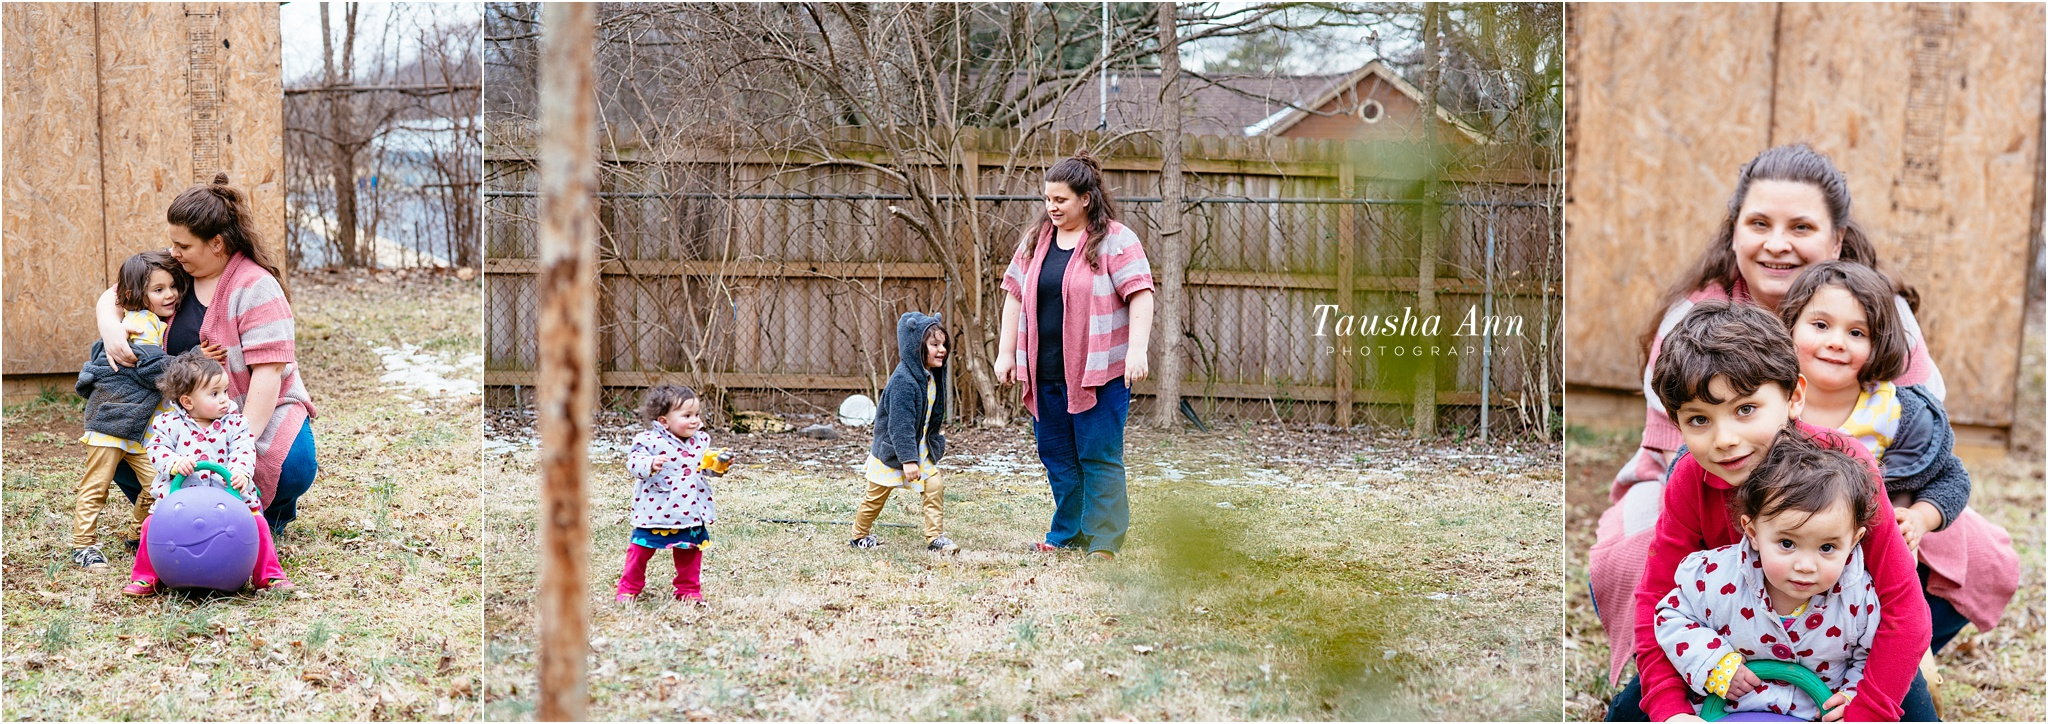 Life_At_Sunset_Lifestyle_Session_Tausha_Ann_Photography_Nashville_TN_Family_Photographer_Kids_Portraits_of_Children_Playing_Outdoors_With_Mom-12